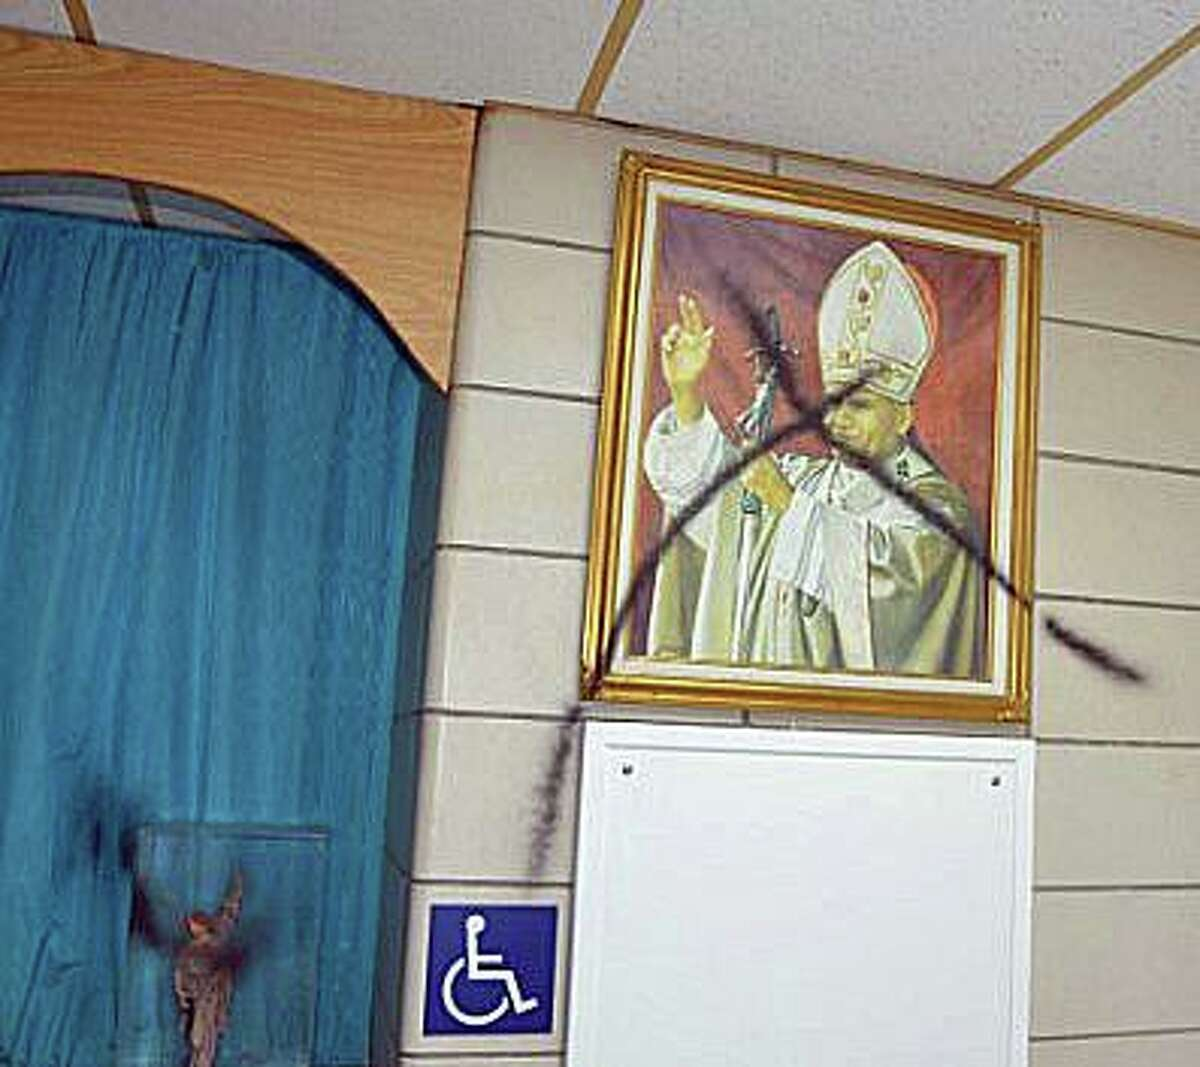 """Milford police are investigating a series of a series of burglaries and vandalism to the former Saint Gabriel Elementary School that has caused """"thousands of dollars in damage."""" Among the vandalism at the school was a defaced portrait of Pope John Paul II, who died in 2005."""